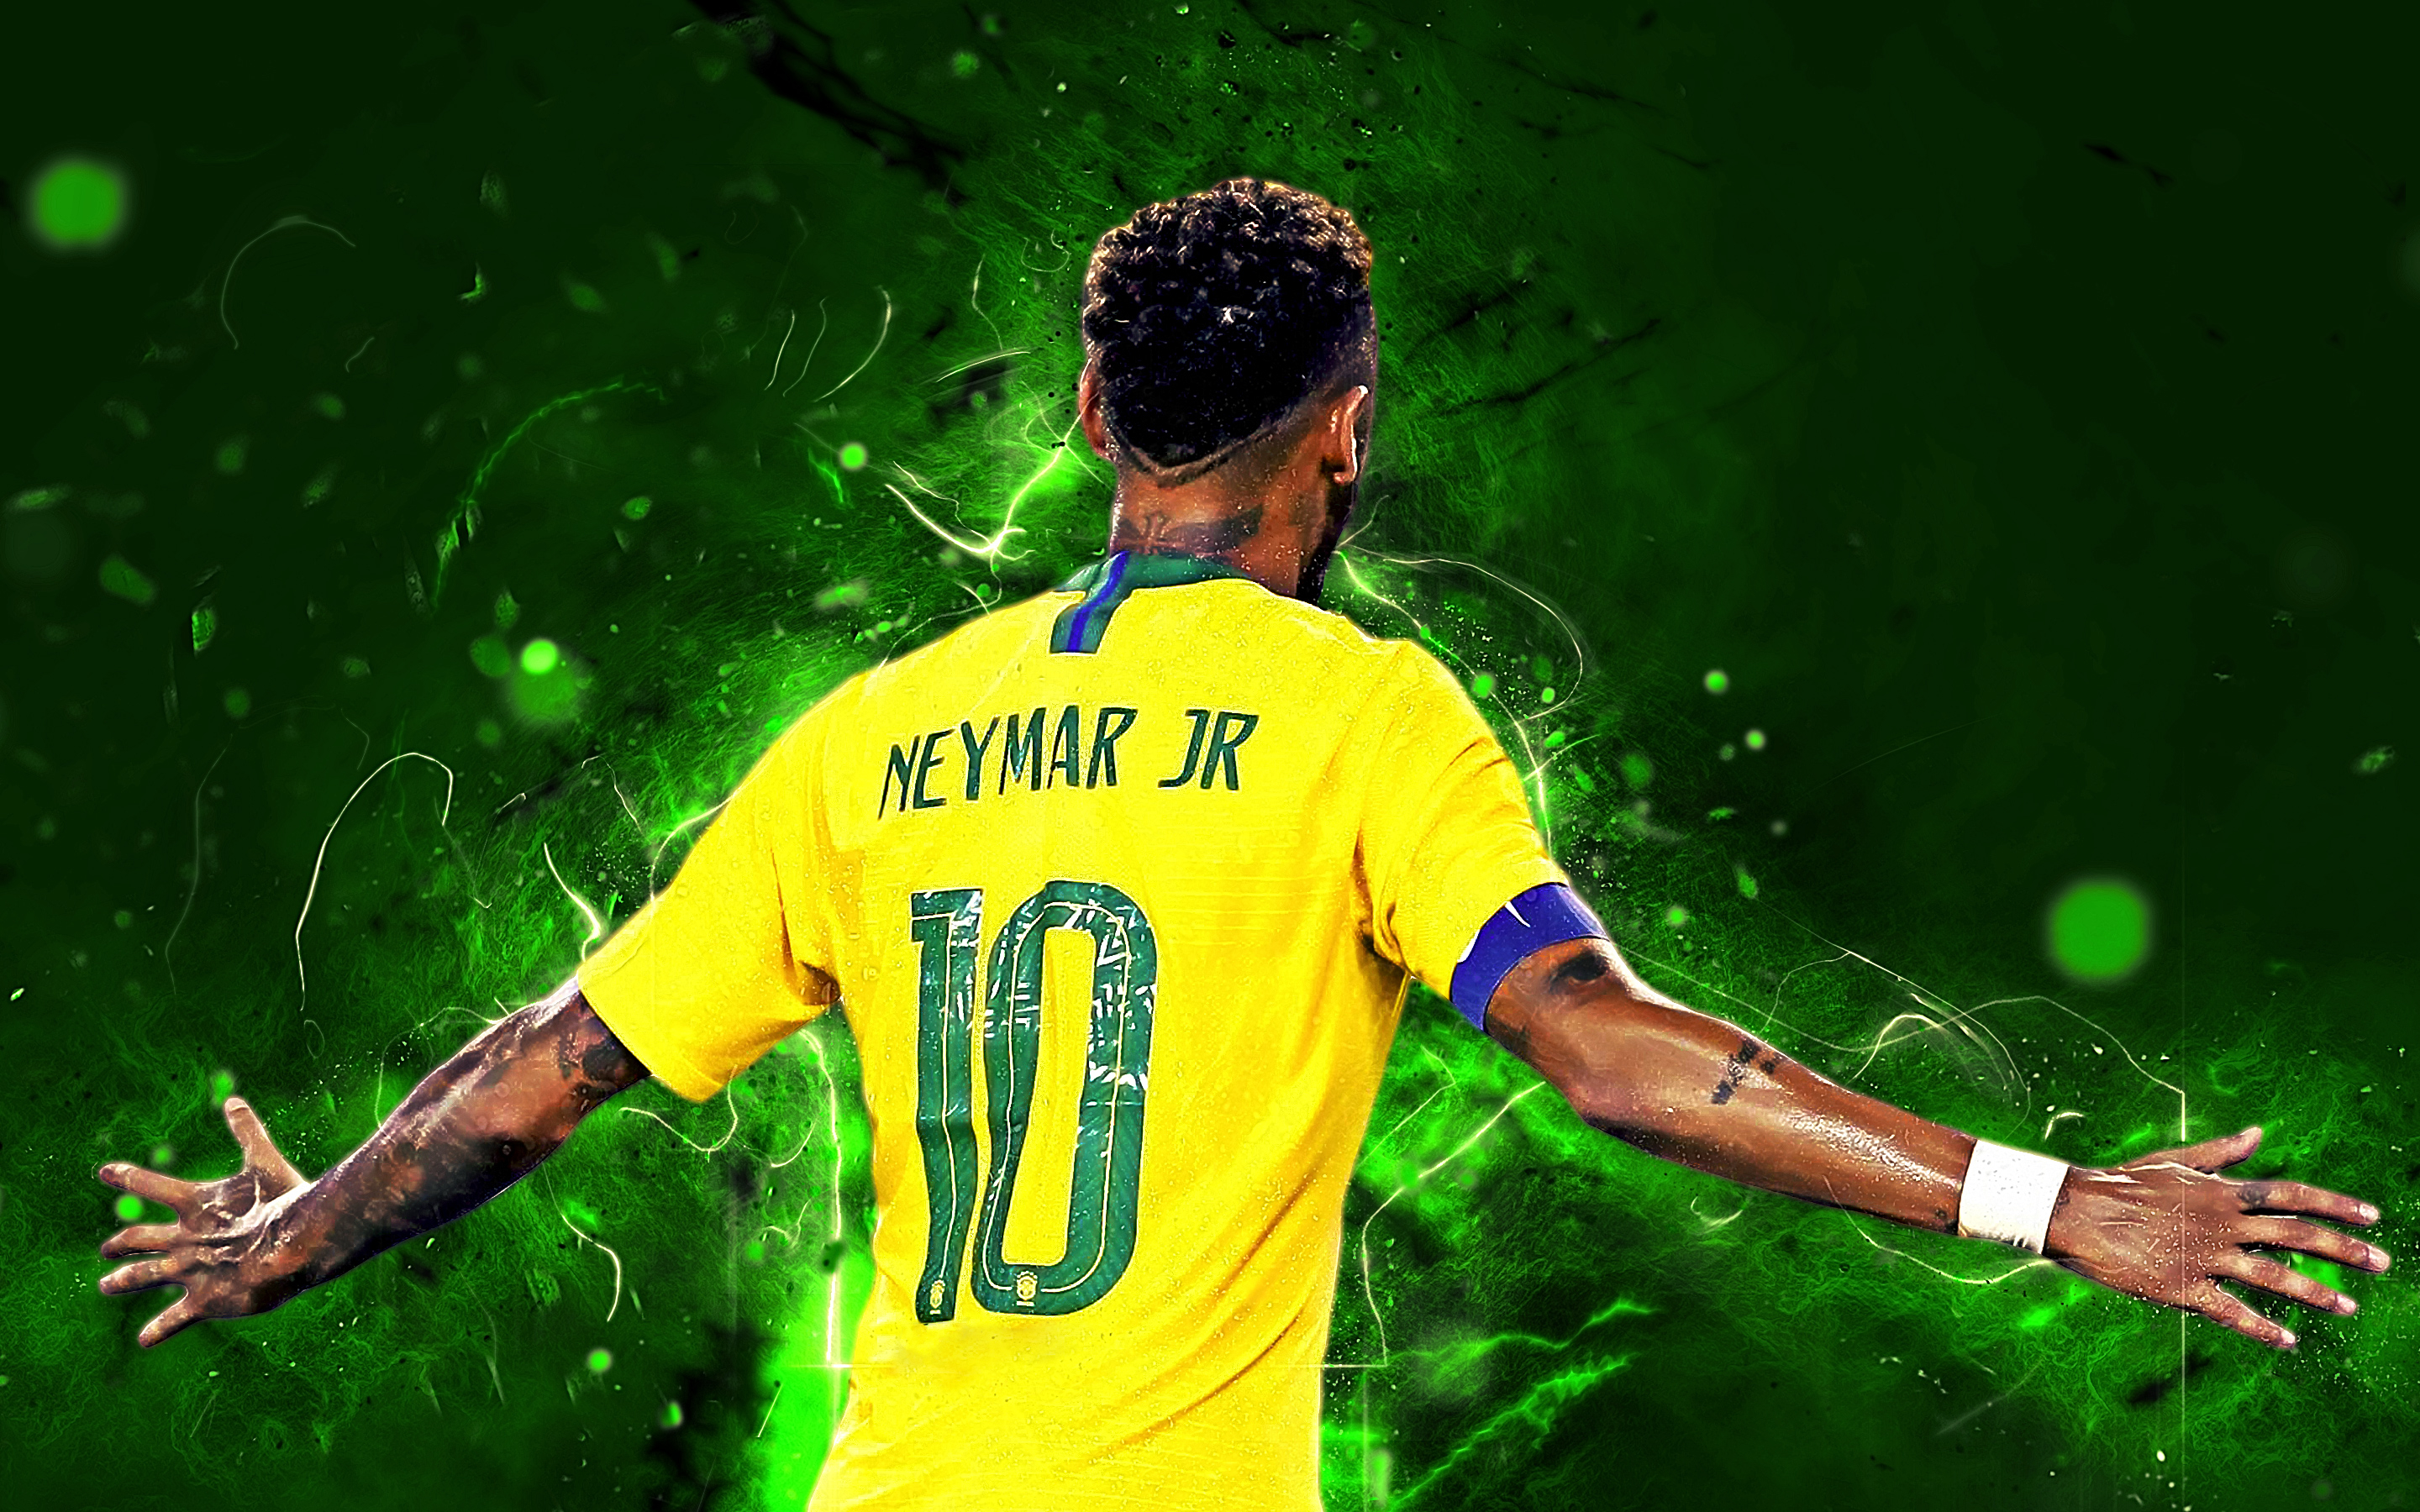 Neymar Jr - Brazil HD Wallpaper | Background Image ...